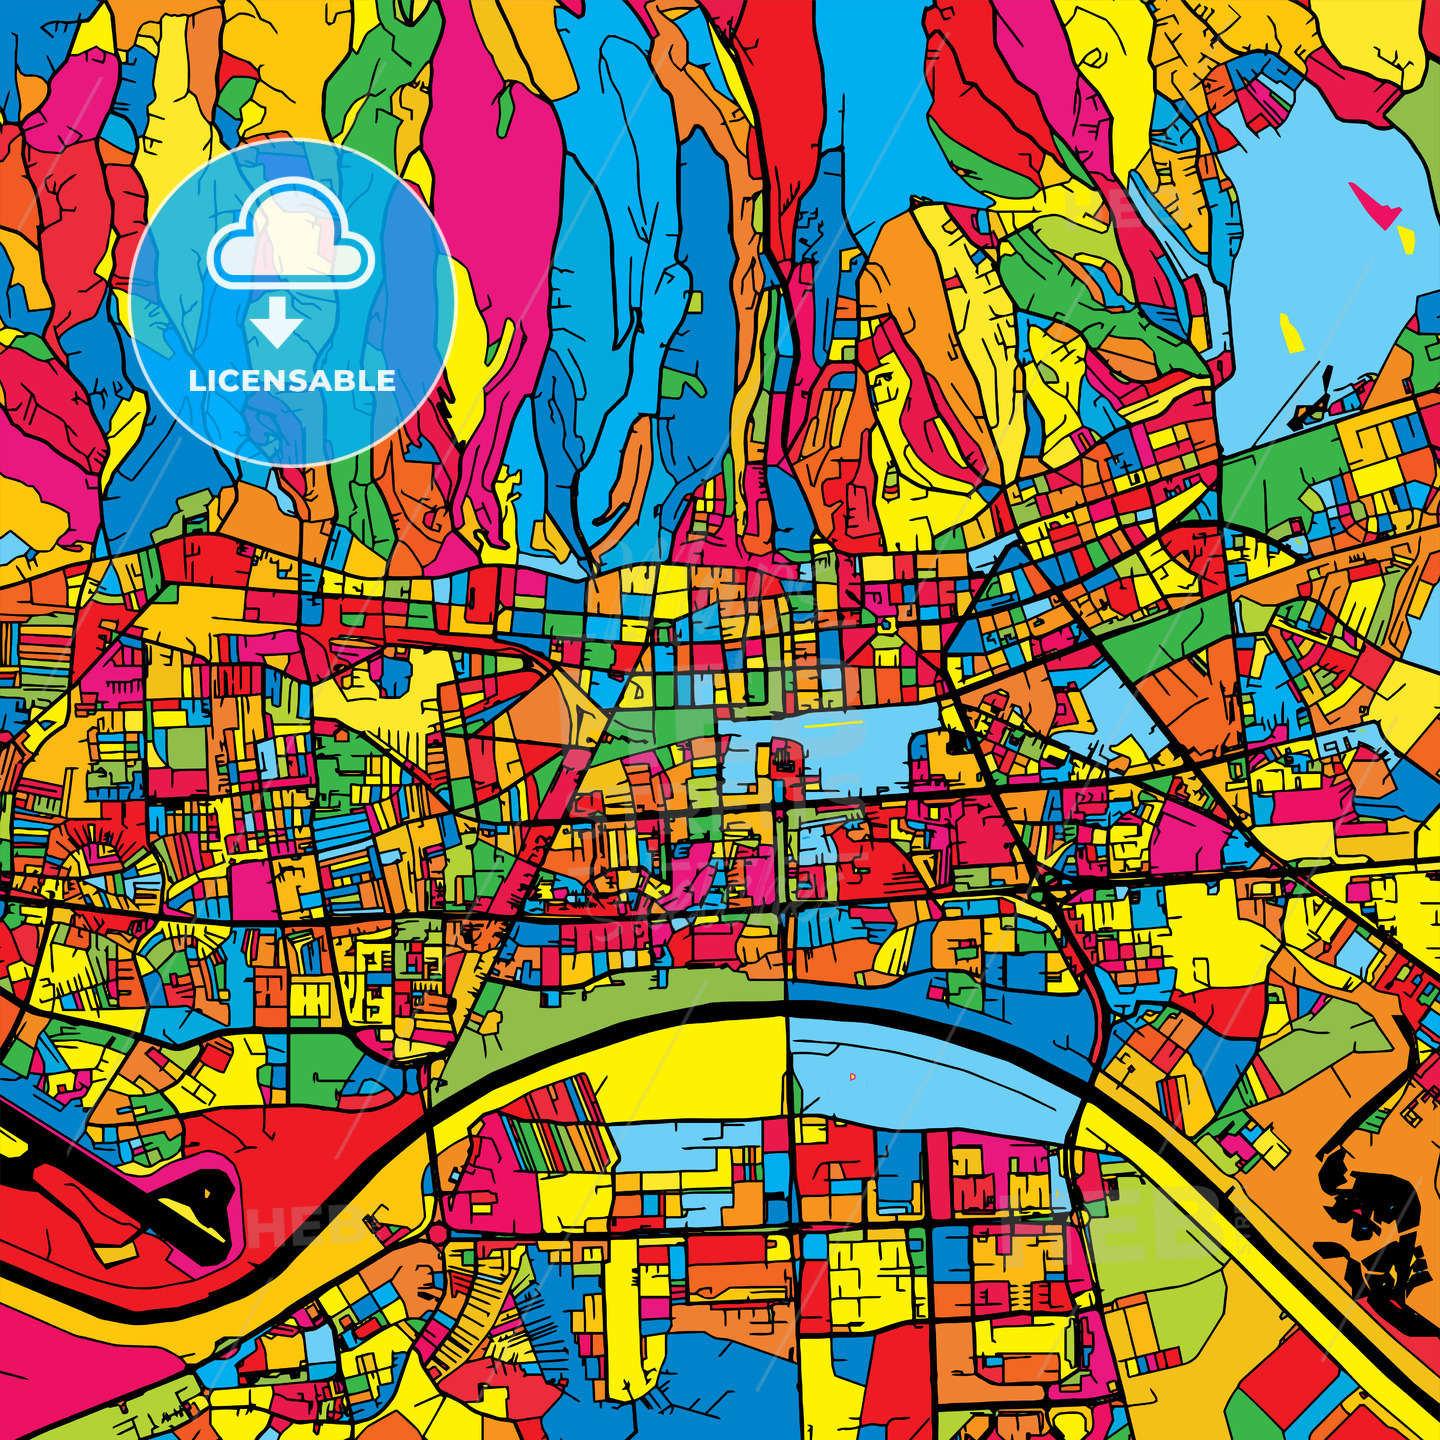 Zagreb Croatia Colorful Map - HEBSTREIT's Sketches